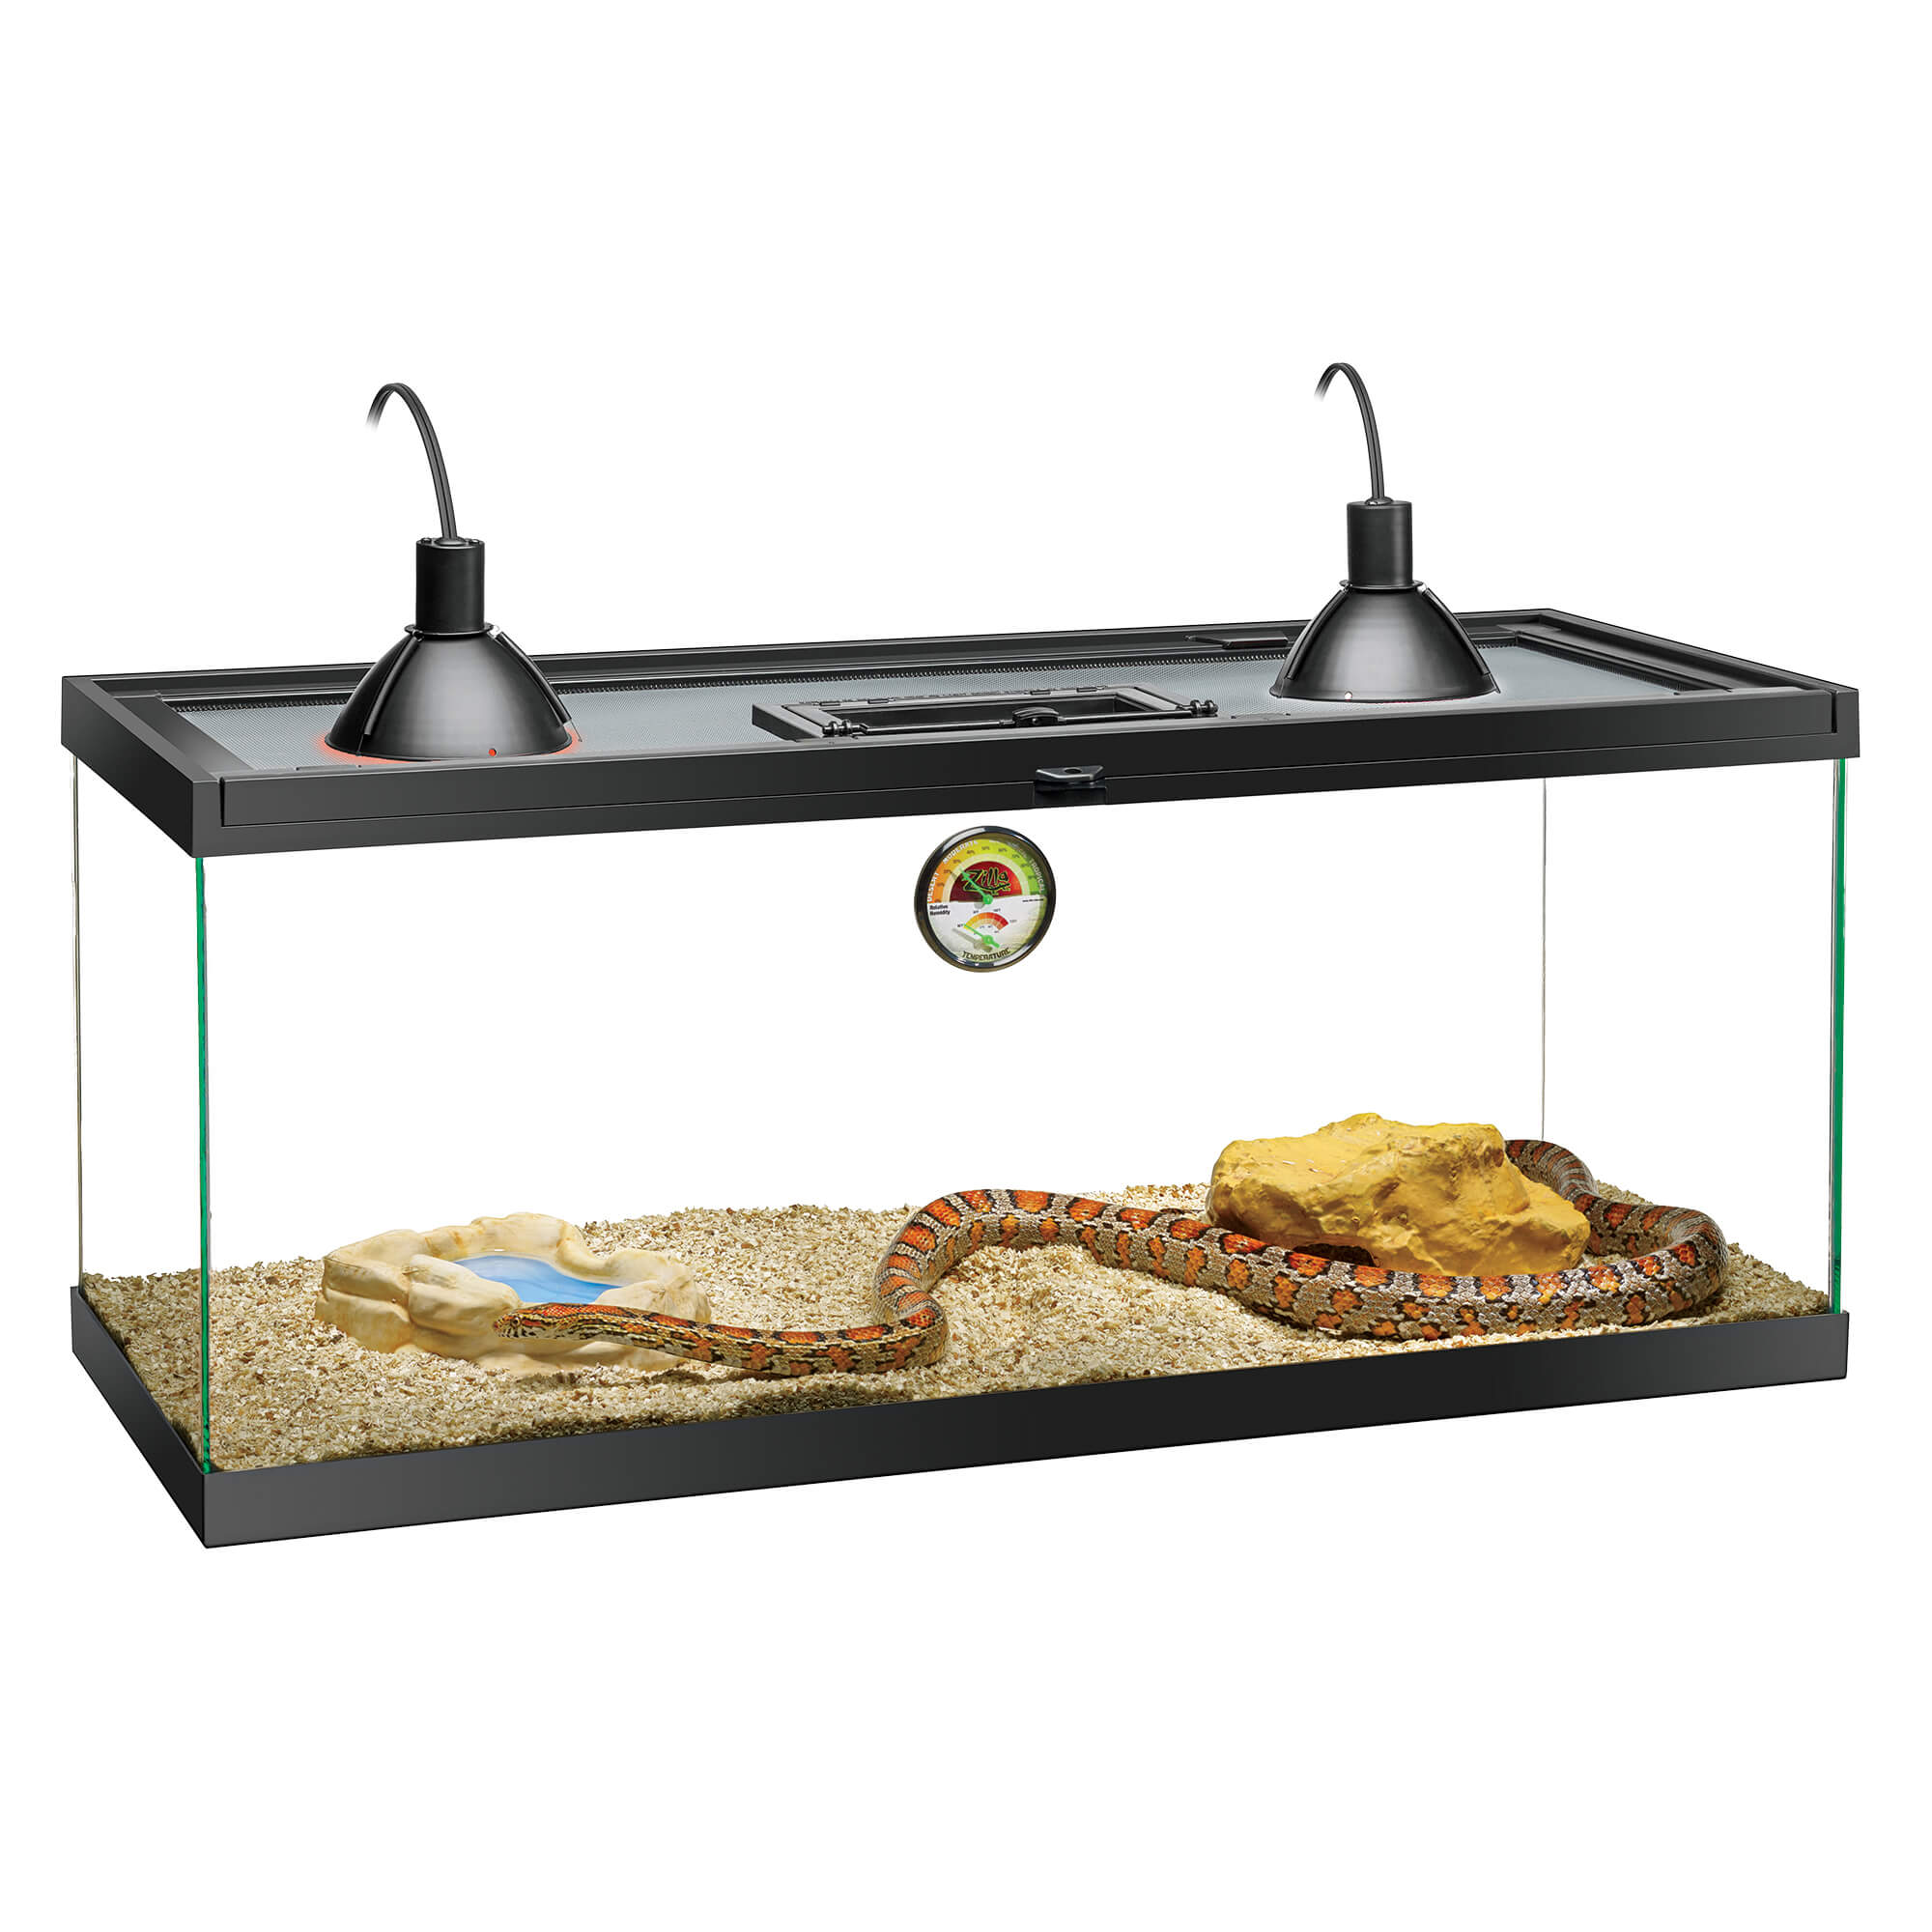 Deluxe 20L Snake Kit Assembled with Snake